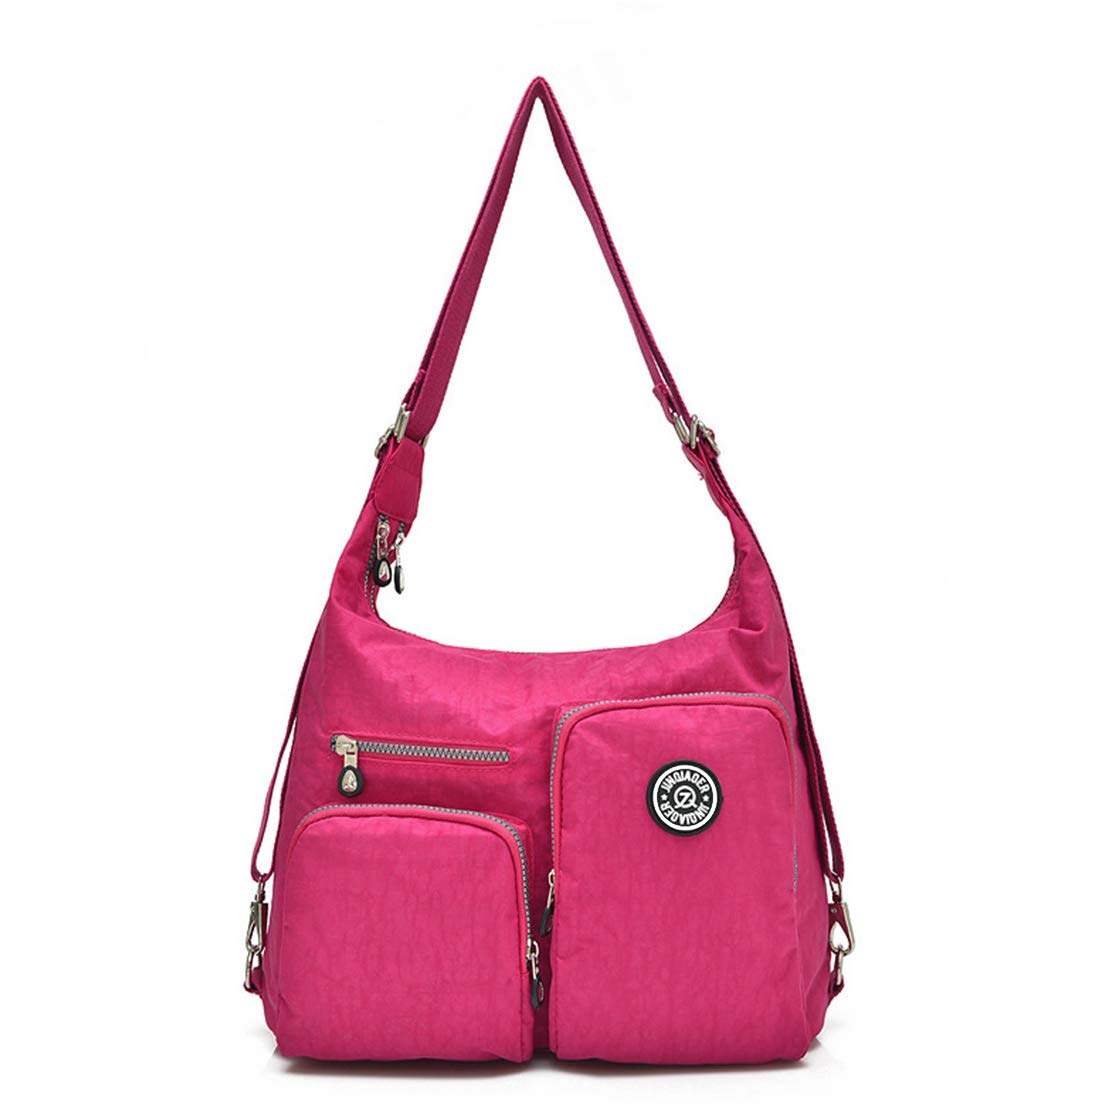 EchoFun Women /& Girls For Waterproof Nylon Casual lightweight Shoulder Bag